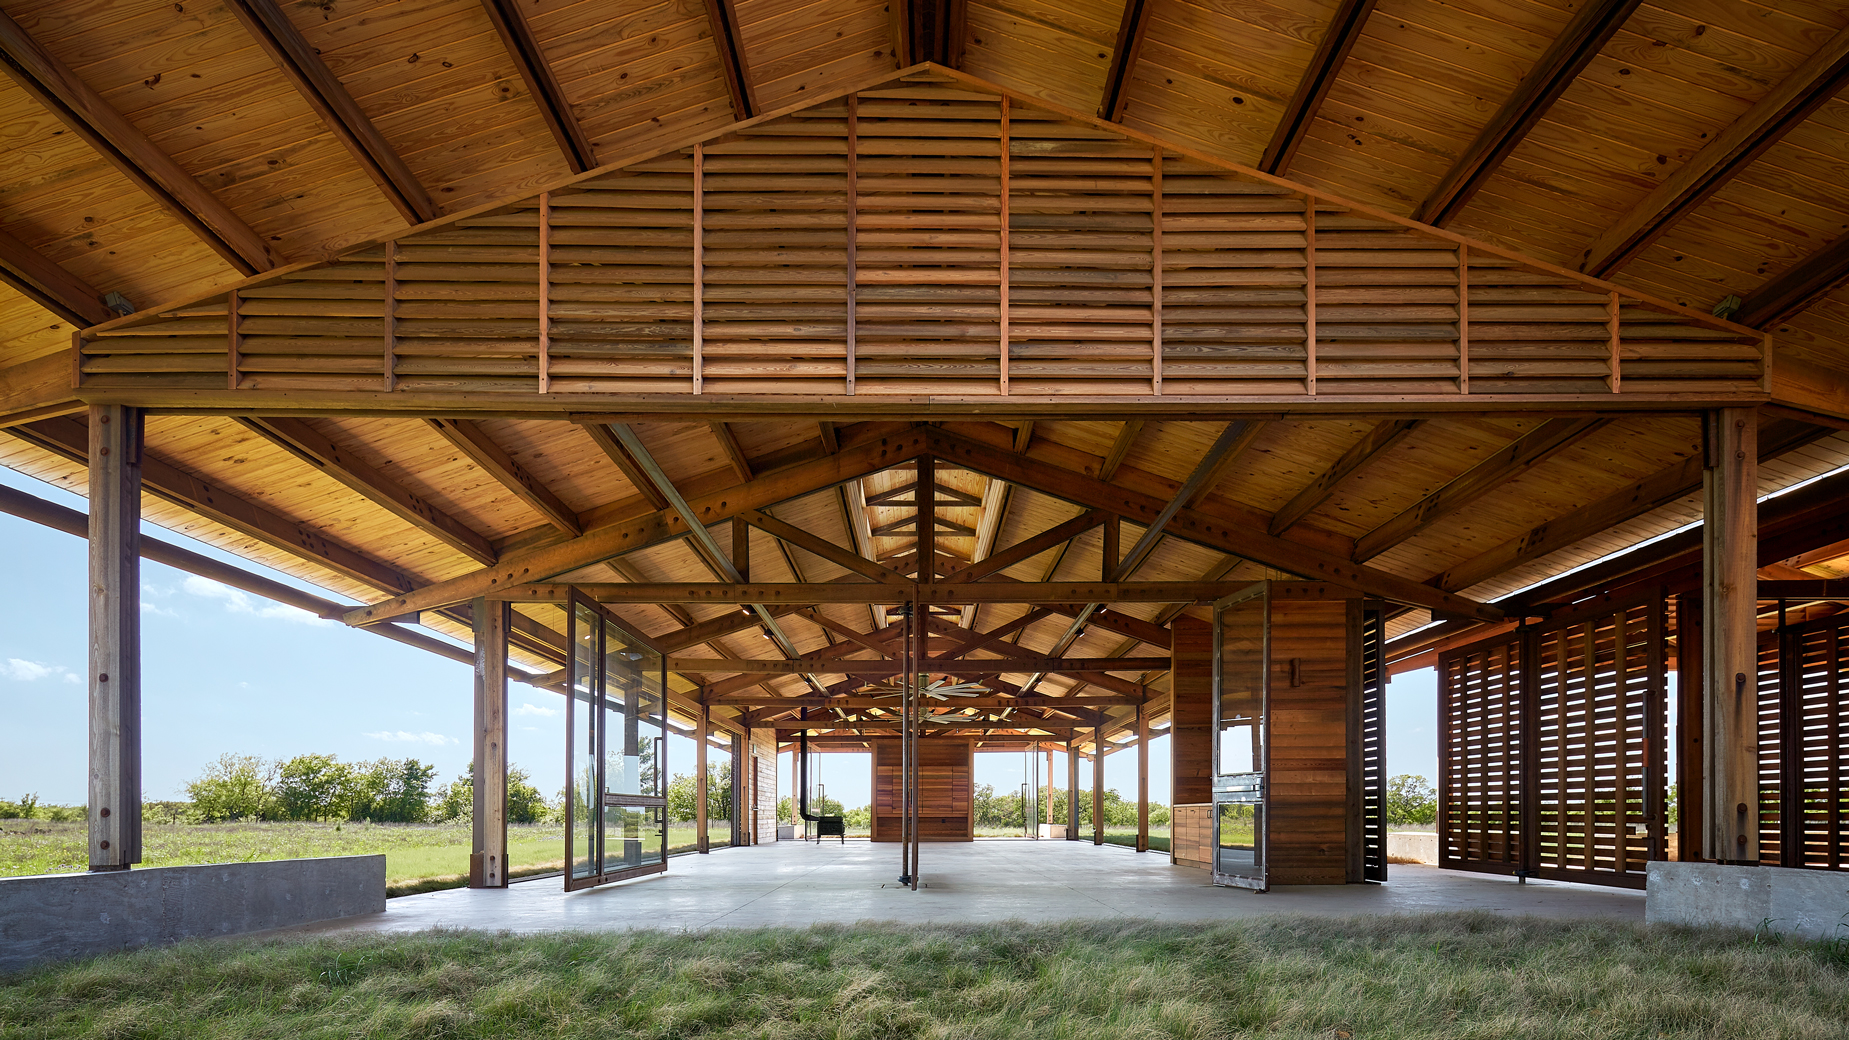 Dror Baldinger FAIA architectural photography water foundation Josey wood pavilion